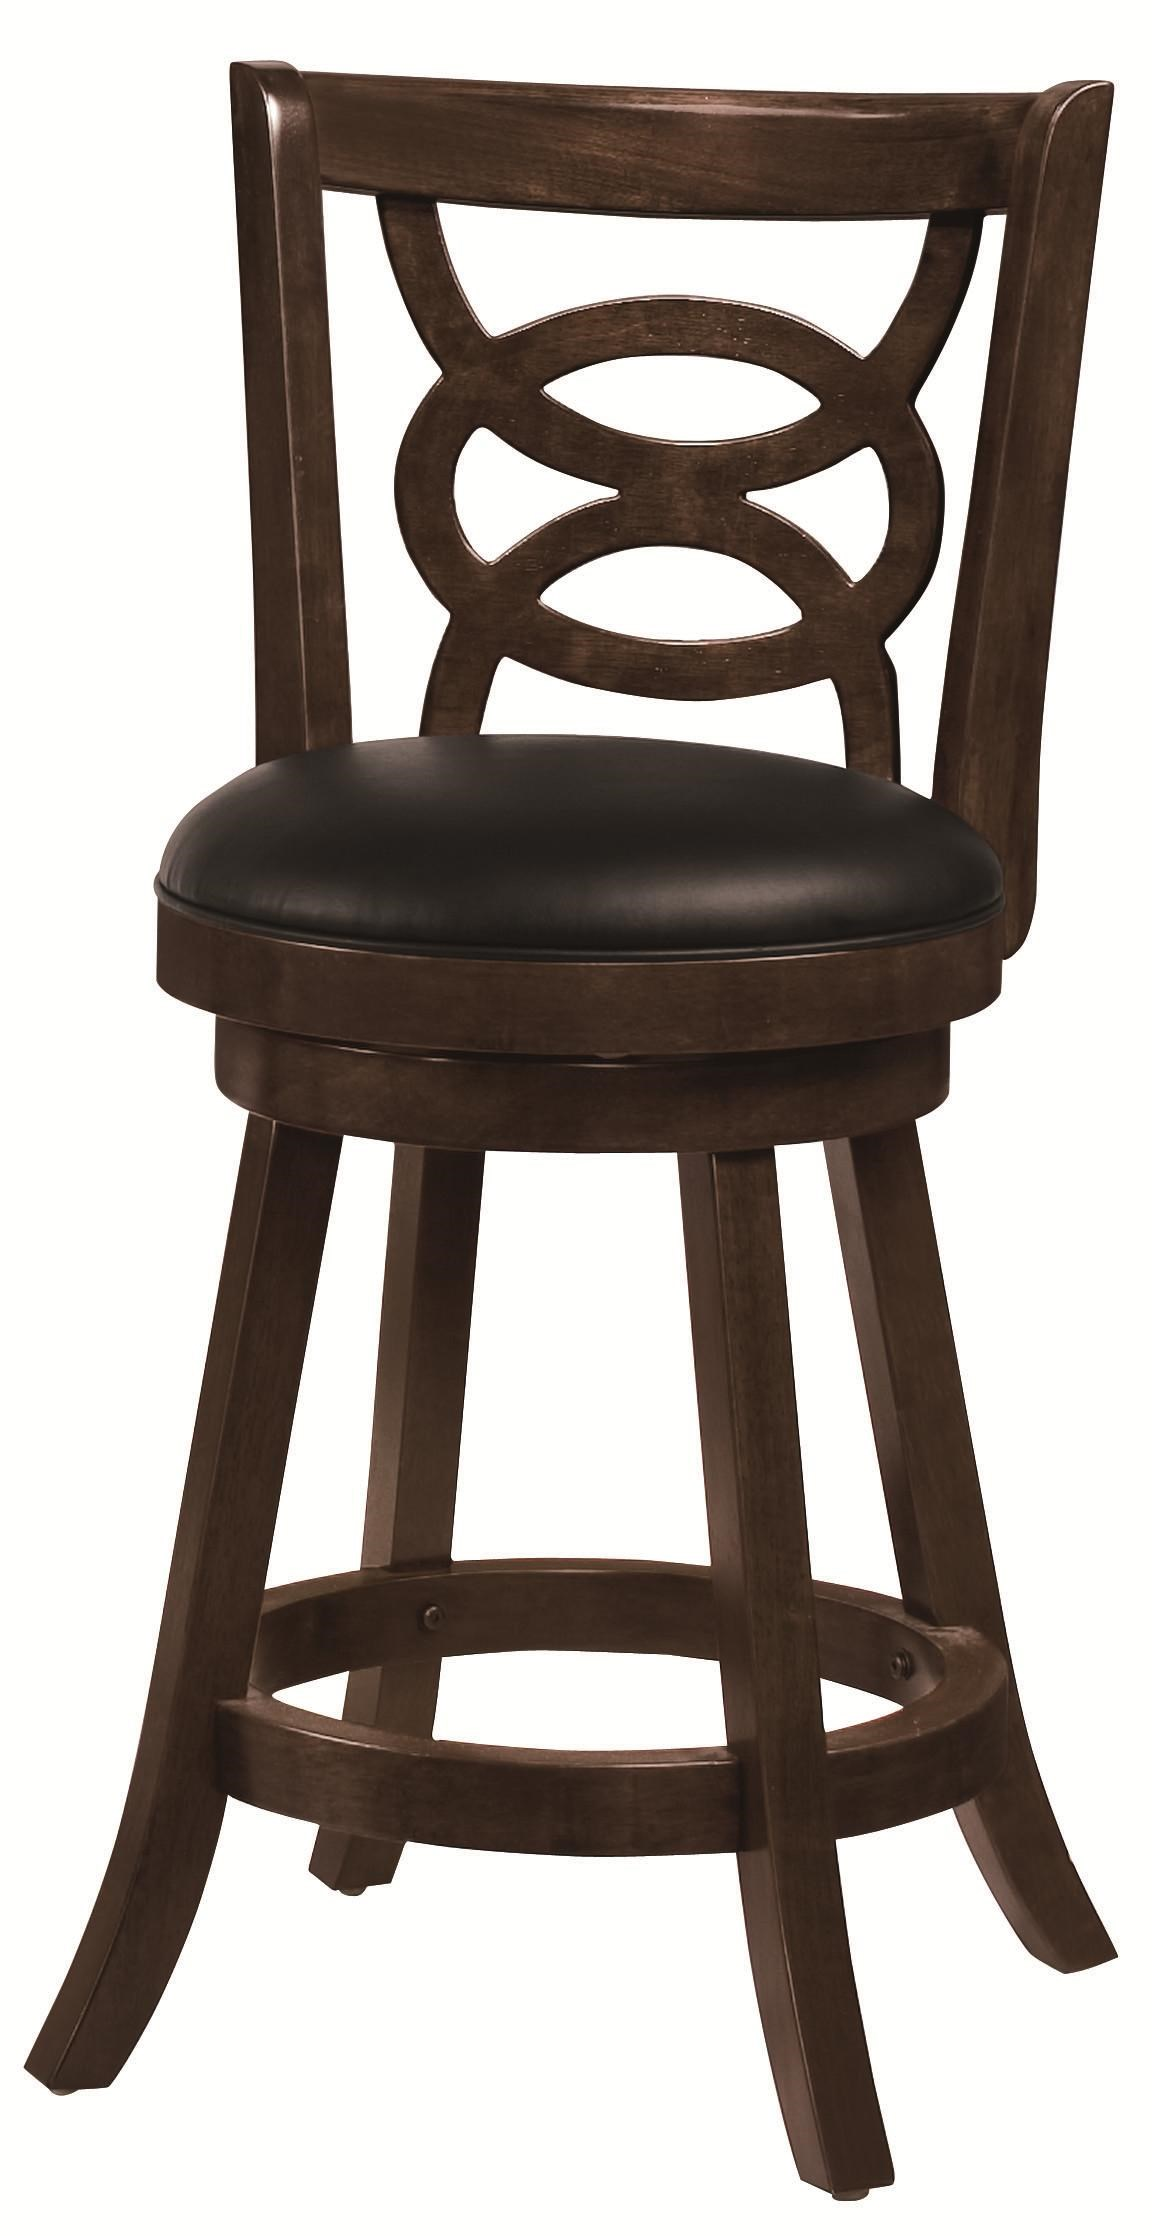 Coaster Dining Chairs And Bar Stools 101929 24 Quot Swivel Bar